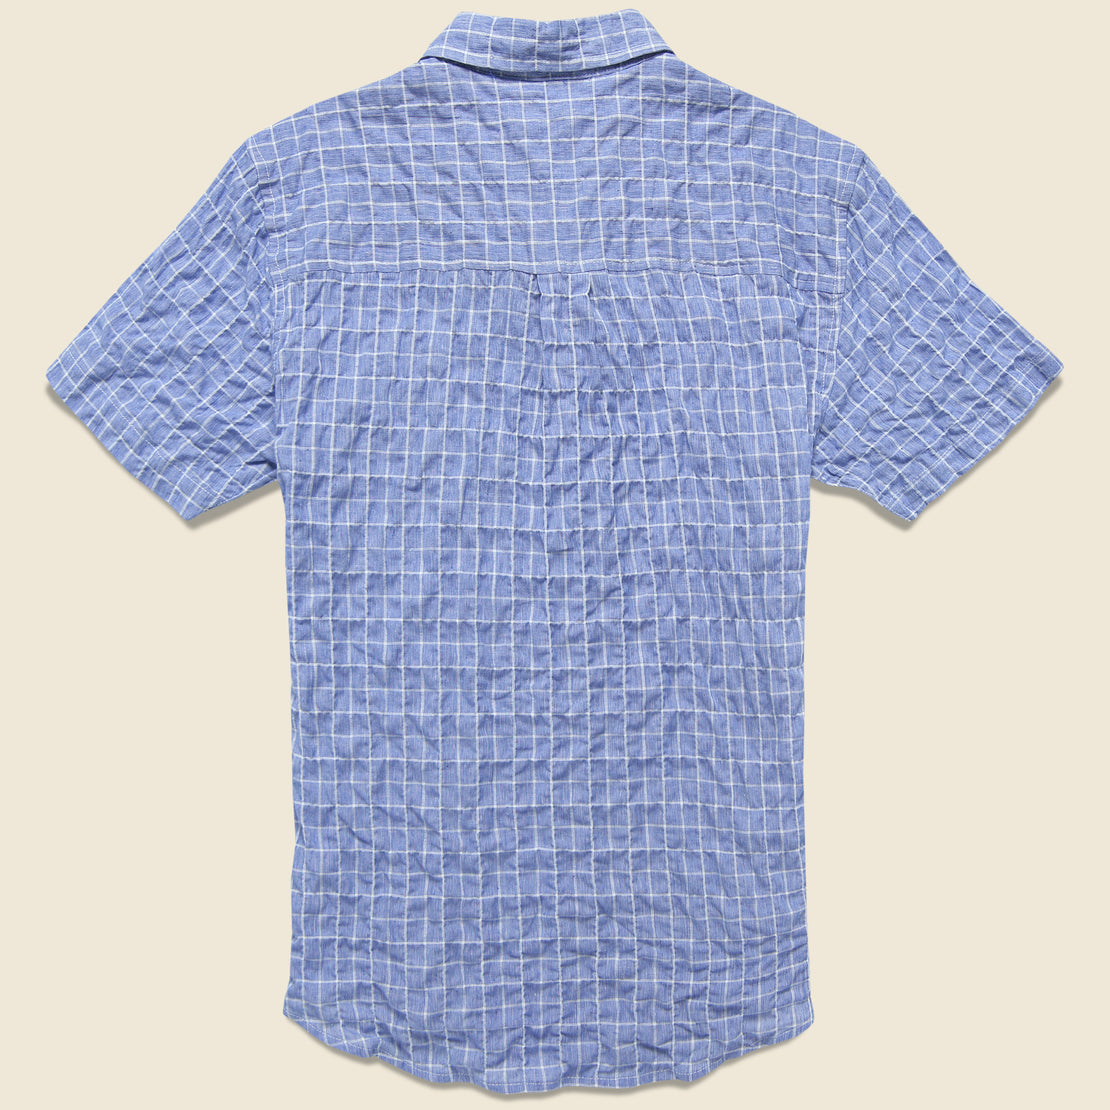 Harbor Shirt - Blue Windowpane